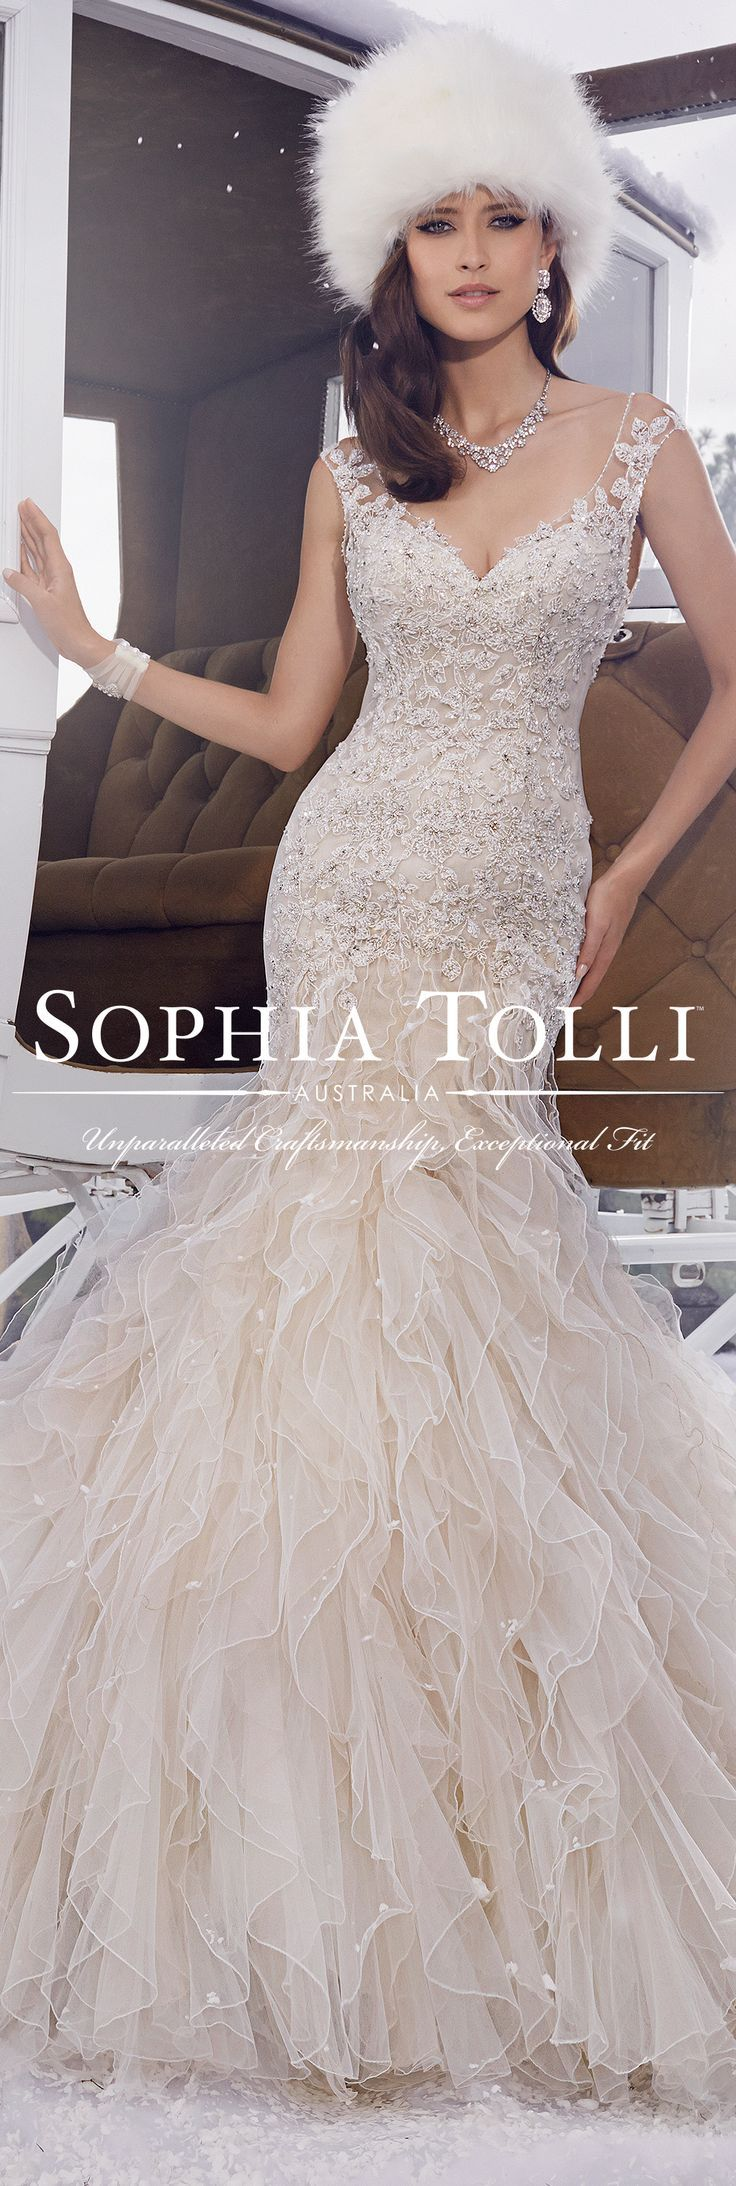 "Sophia Tolli ""Blake"" - Y21502 Ruffles in misty tulle and decadent with hand-beading framed with lace appliqués make this wedding dress the standout of the season! Be sure to follow us on Pinterest for endless amazing wedding inspiration and the very latest wedding gowns each season. @moncheribridals"